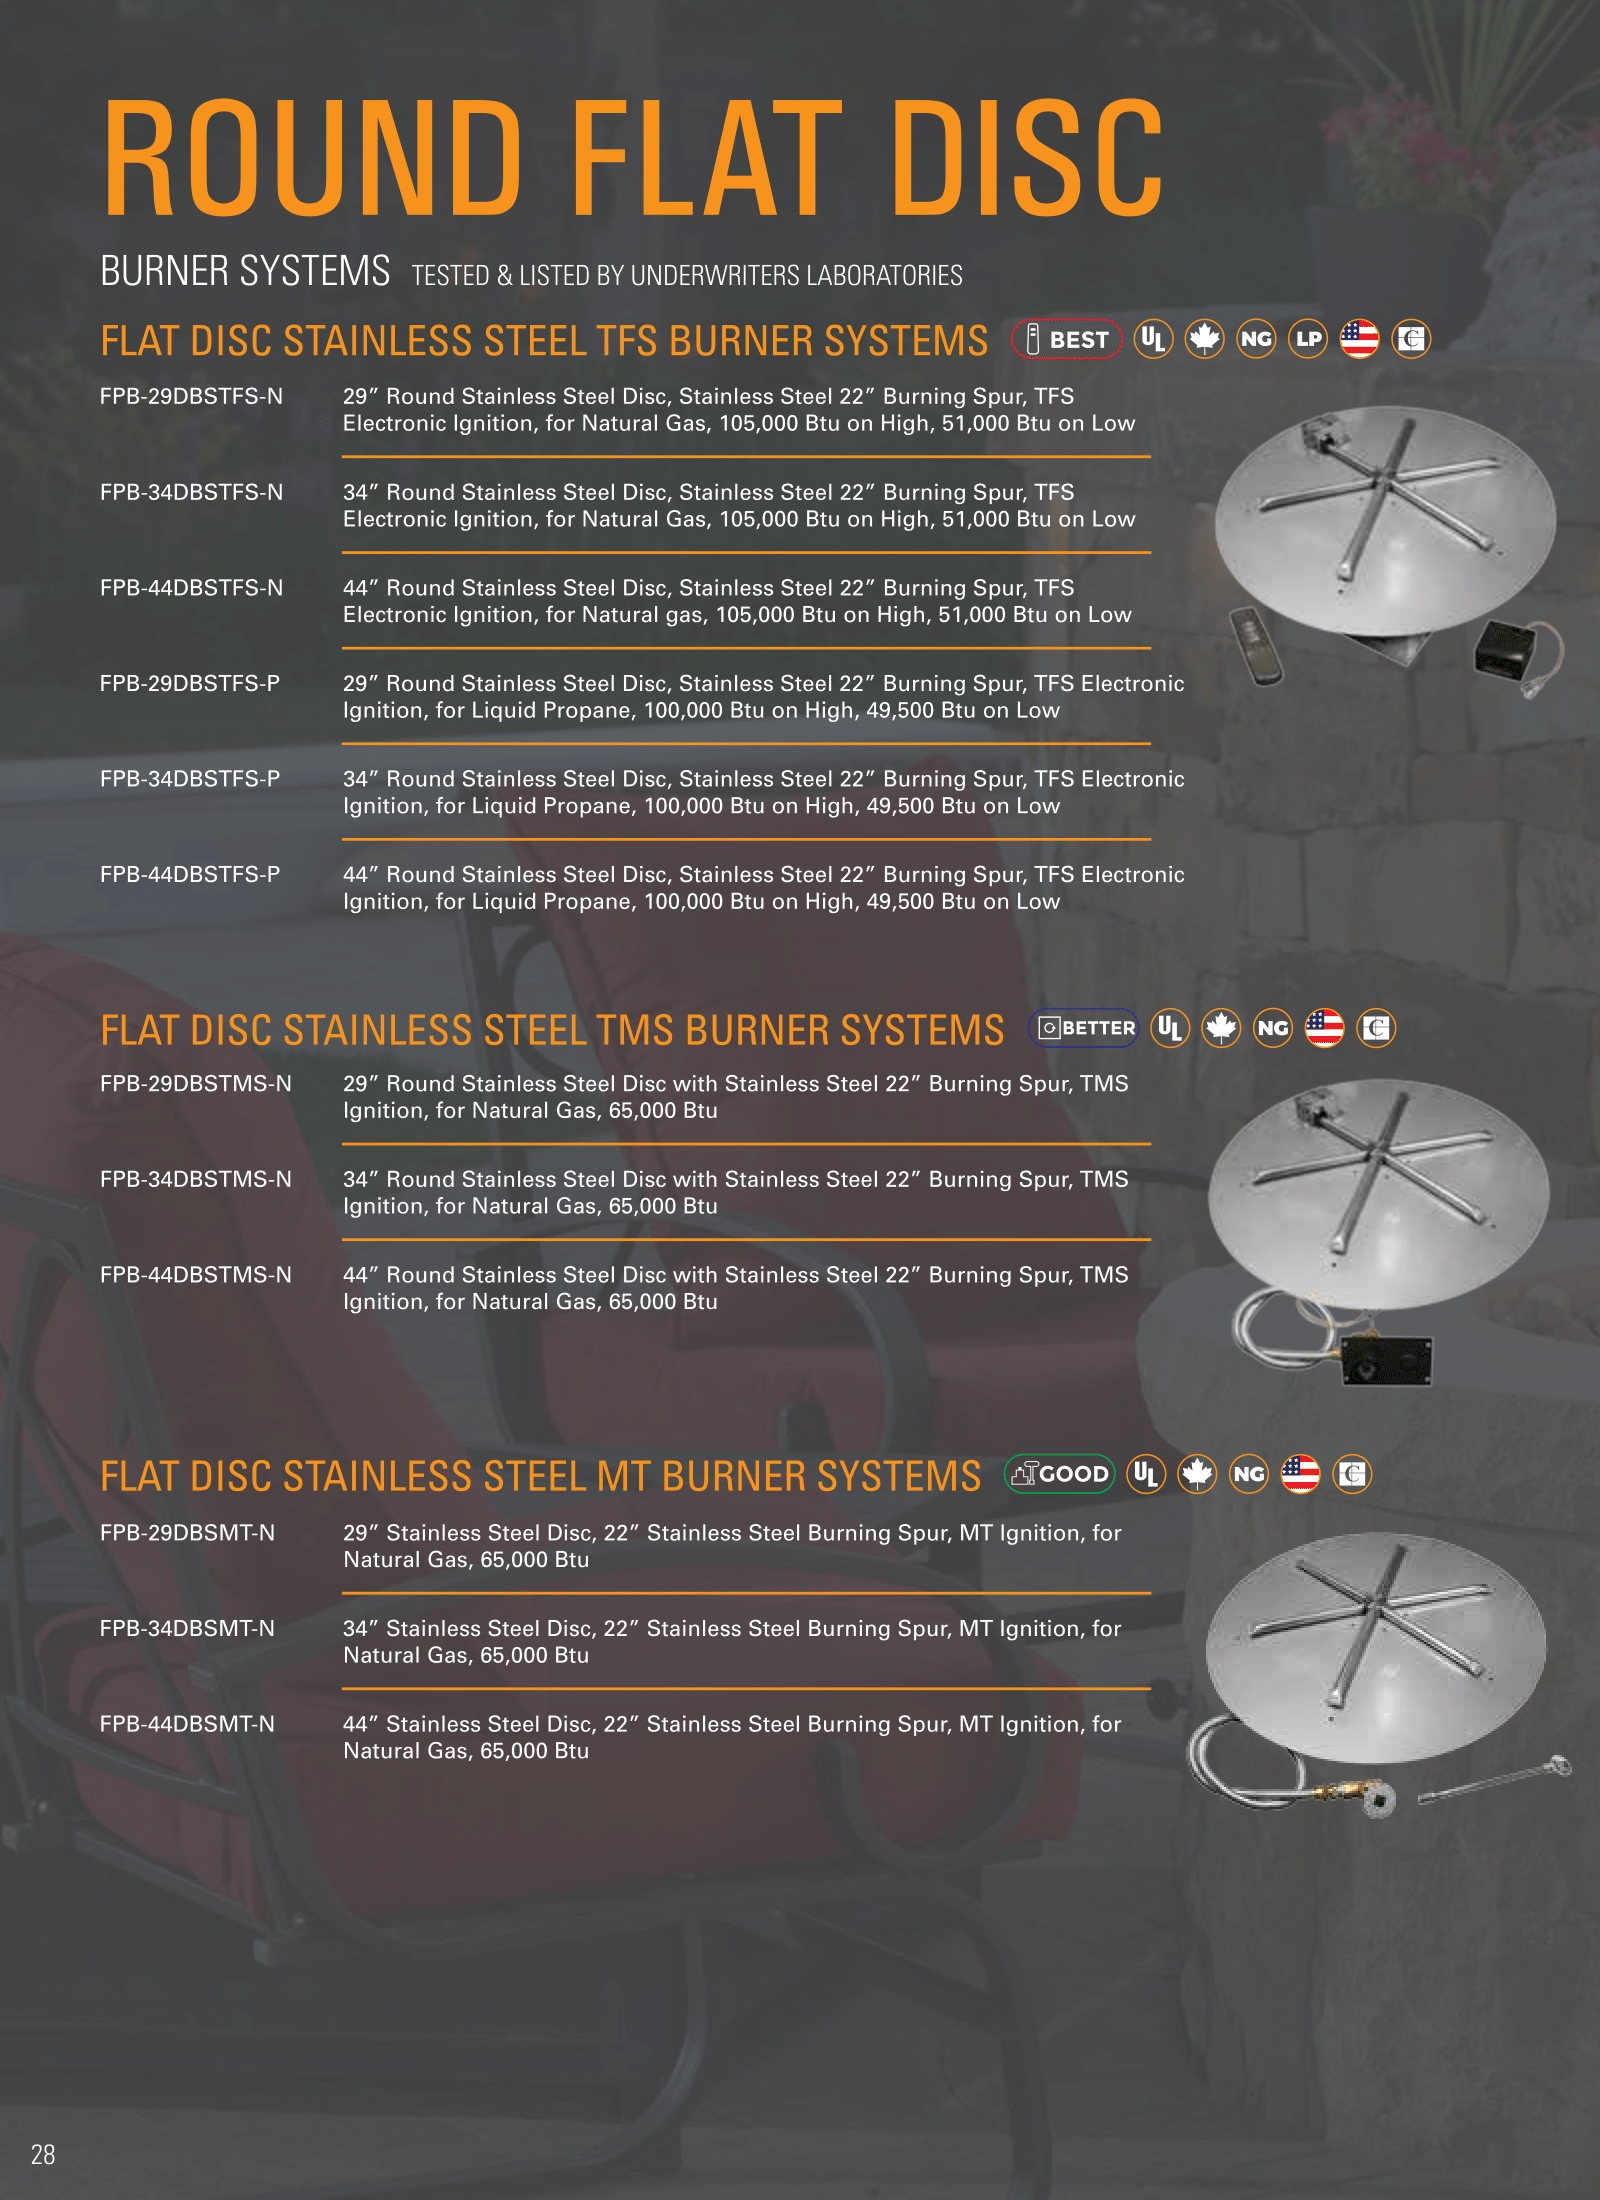 fire gear round flat disc burner technologies sizes and details